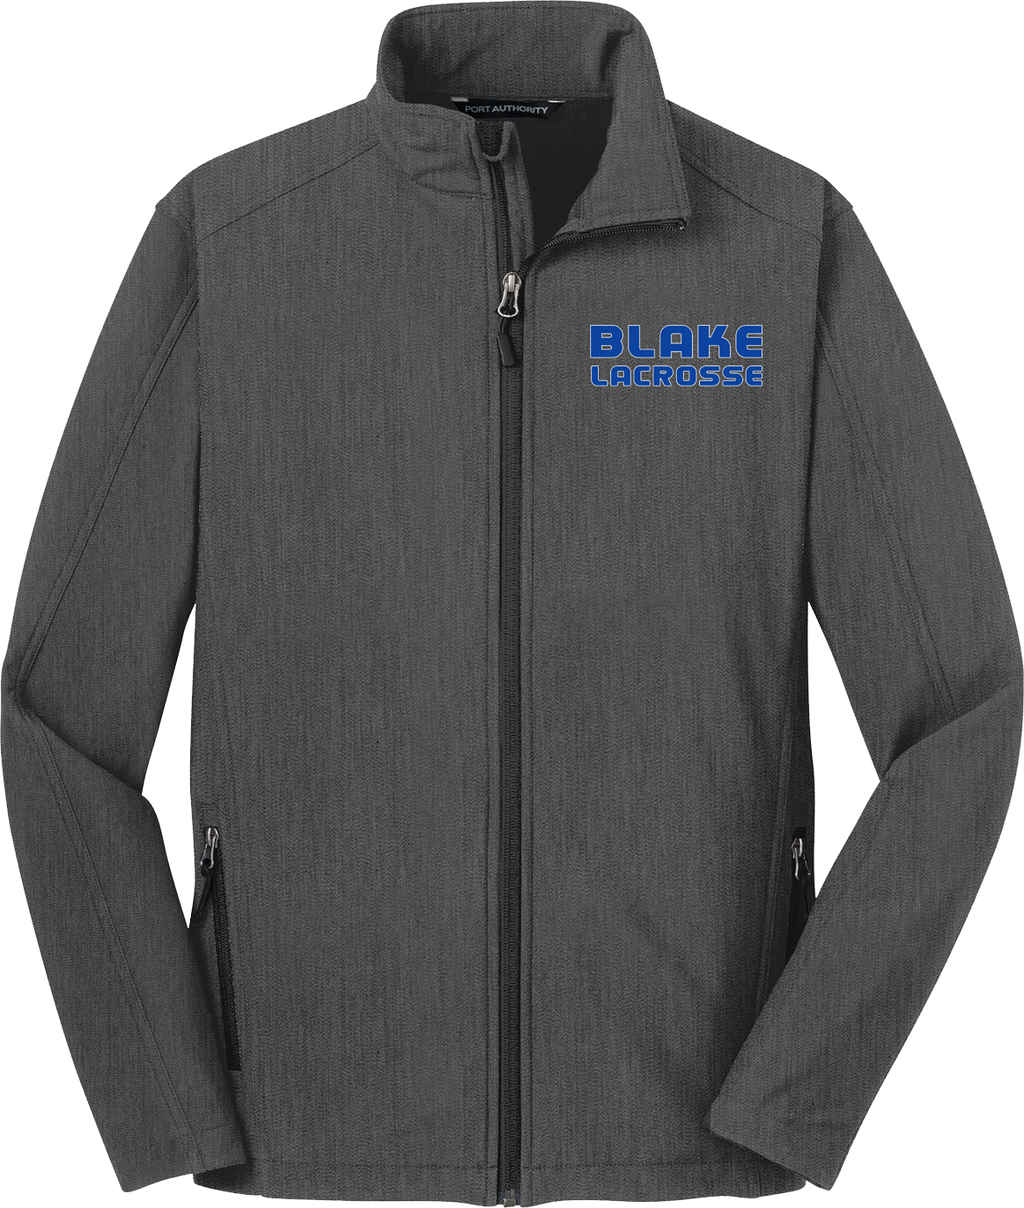 Blake Lacrosse Soft Shell Jacket